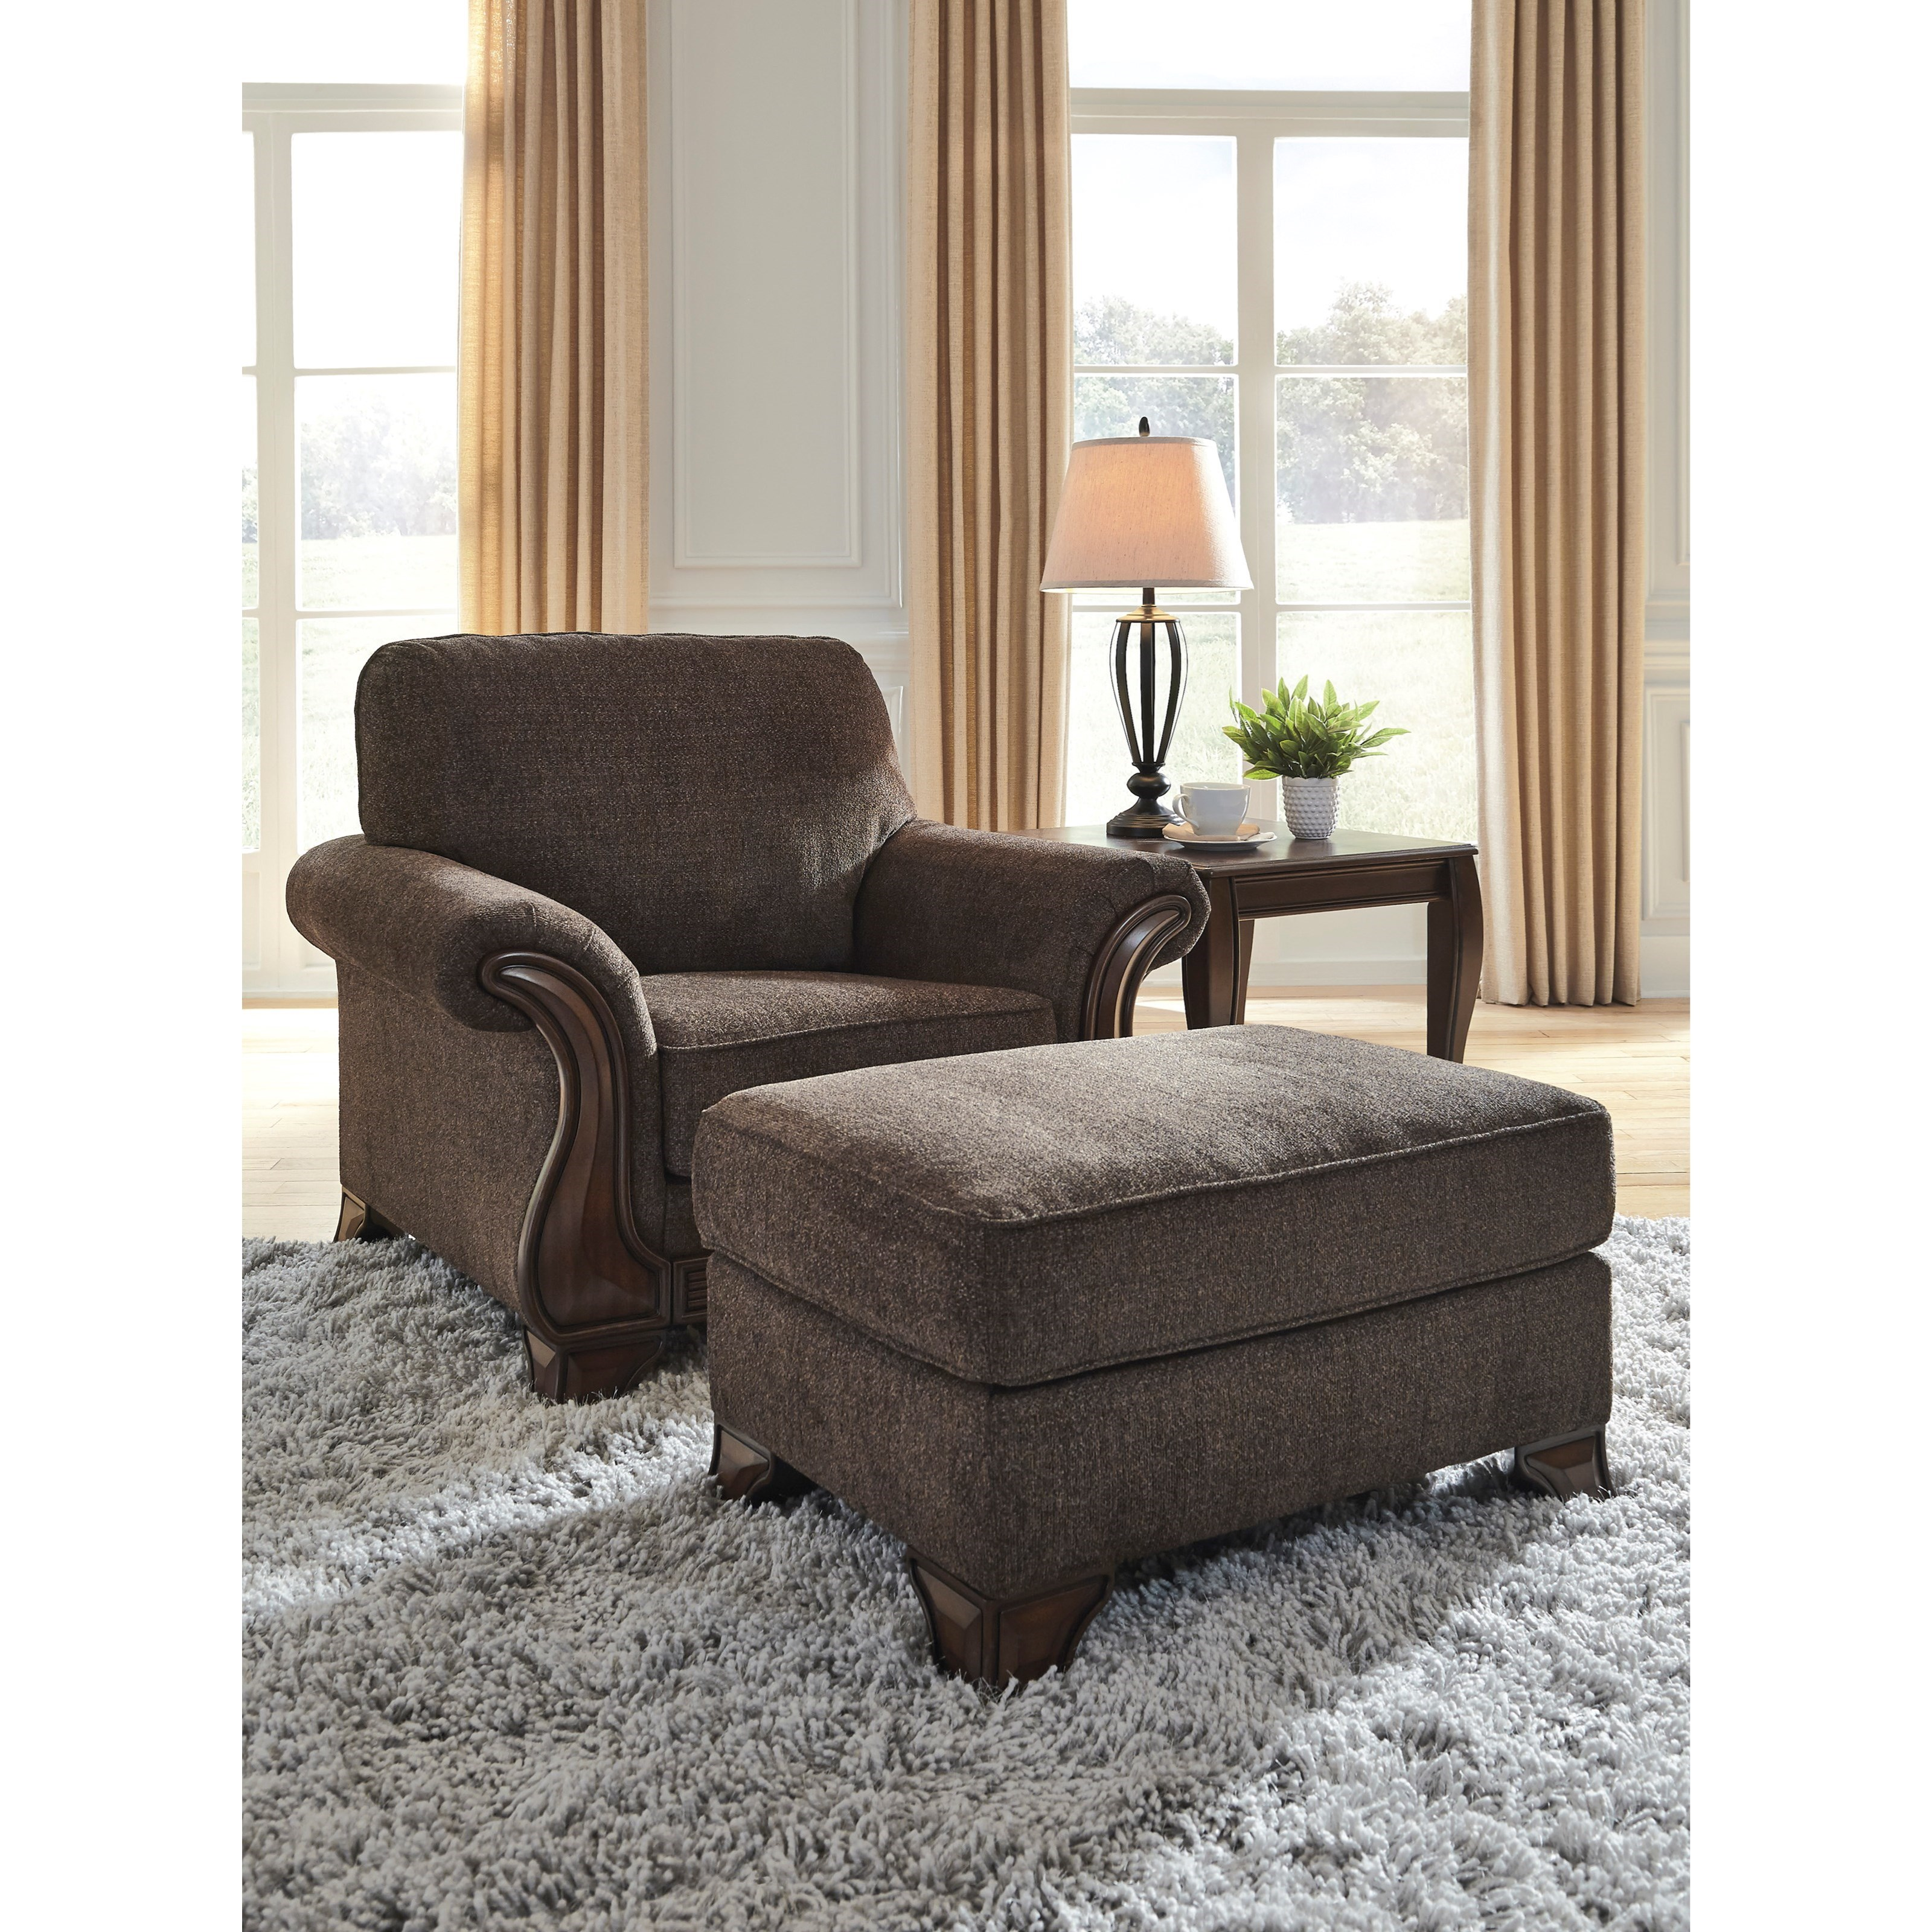 Miltonwood Chair and Ottoman Set by Benchcraft at Walker's Furniture